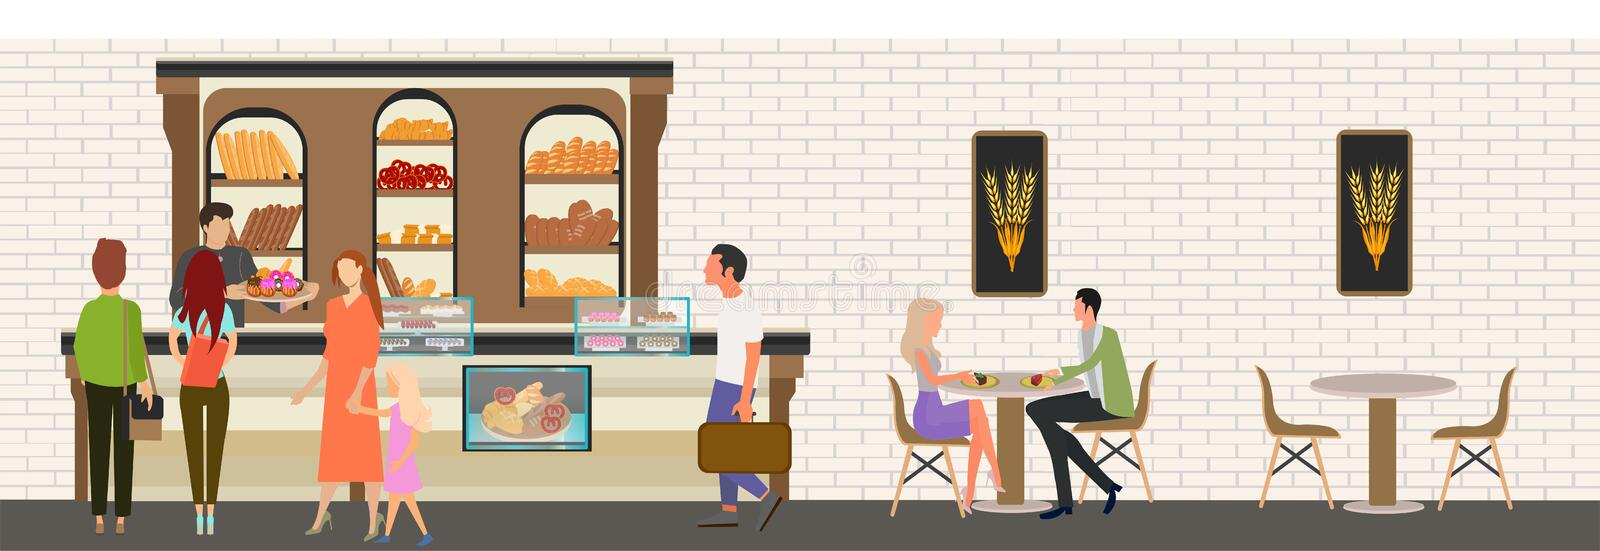 Vector of people staying in line shopping in the bakery stock illustration